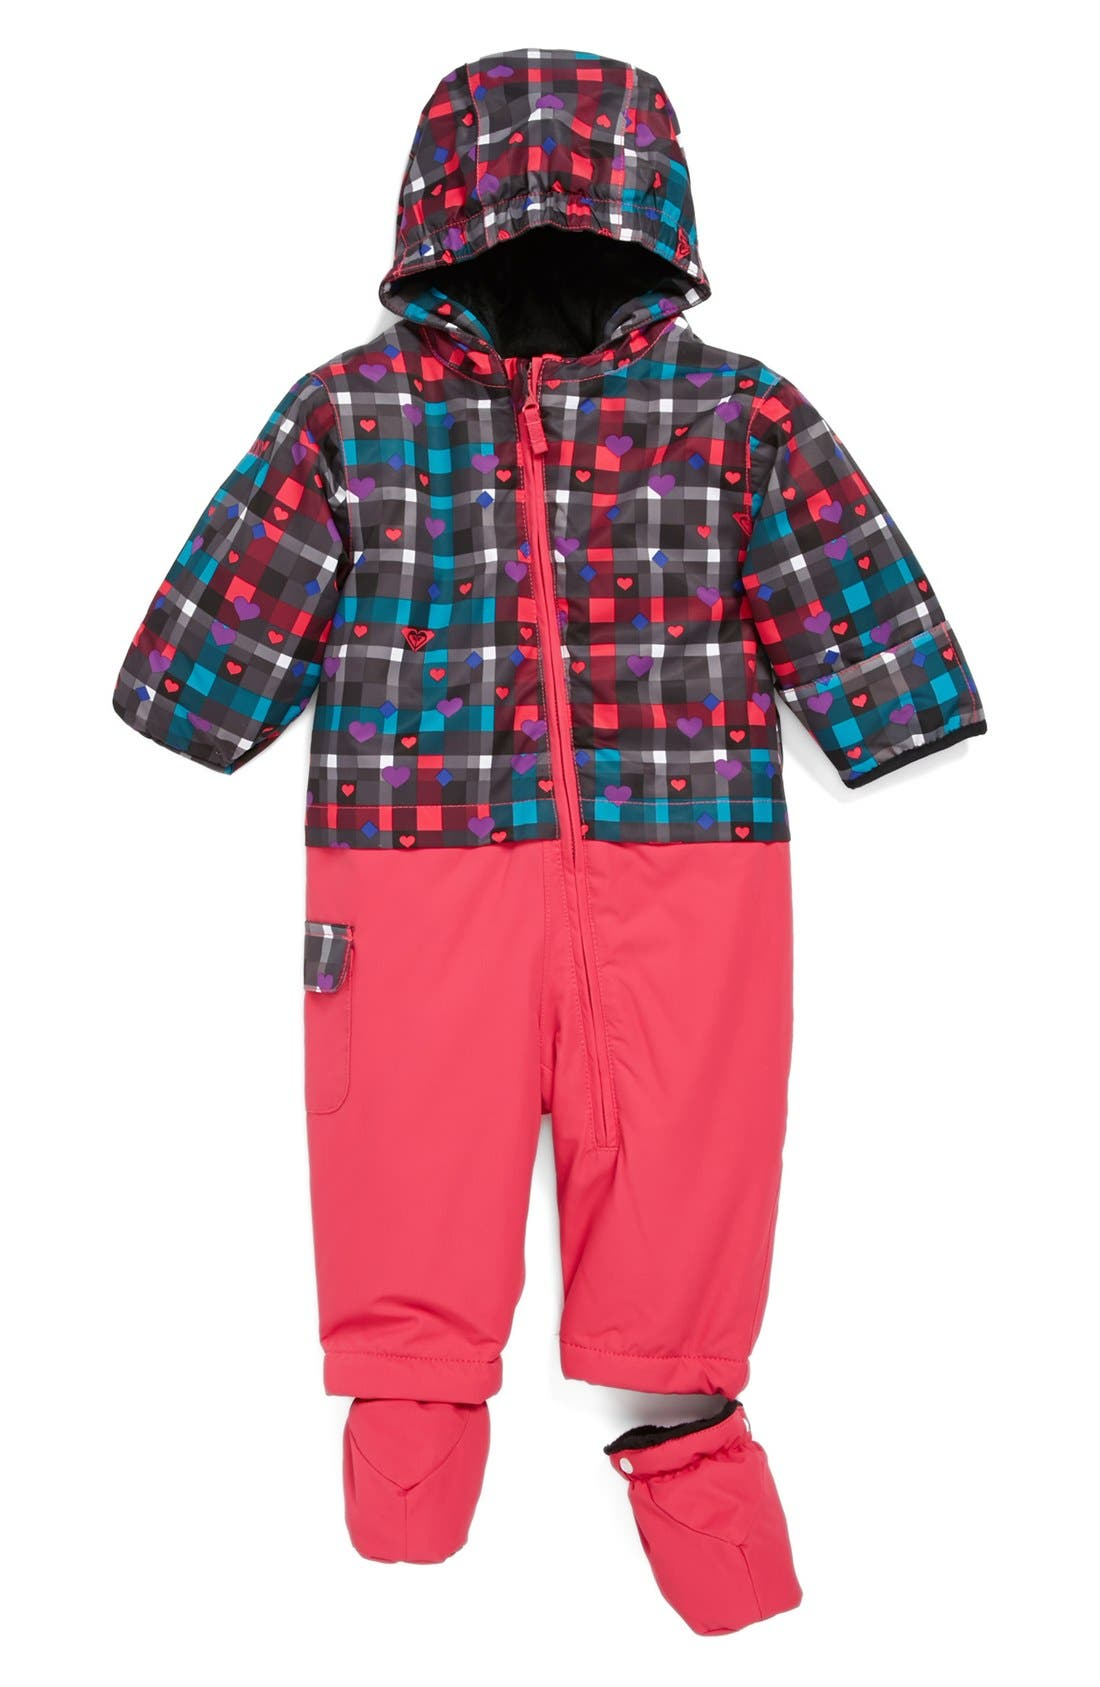 Alternate Image 1 Selected - Roxy 'Sweet Pea' Snow Suit (Baby Girls)